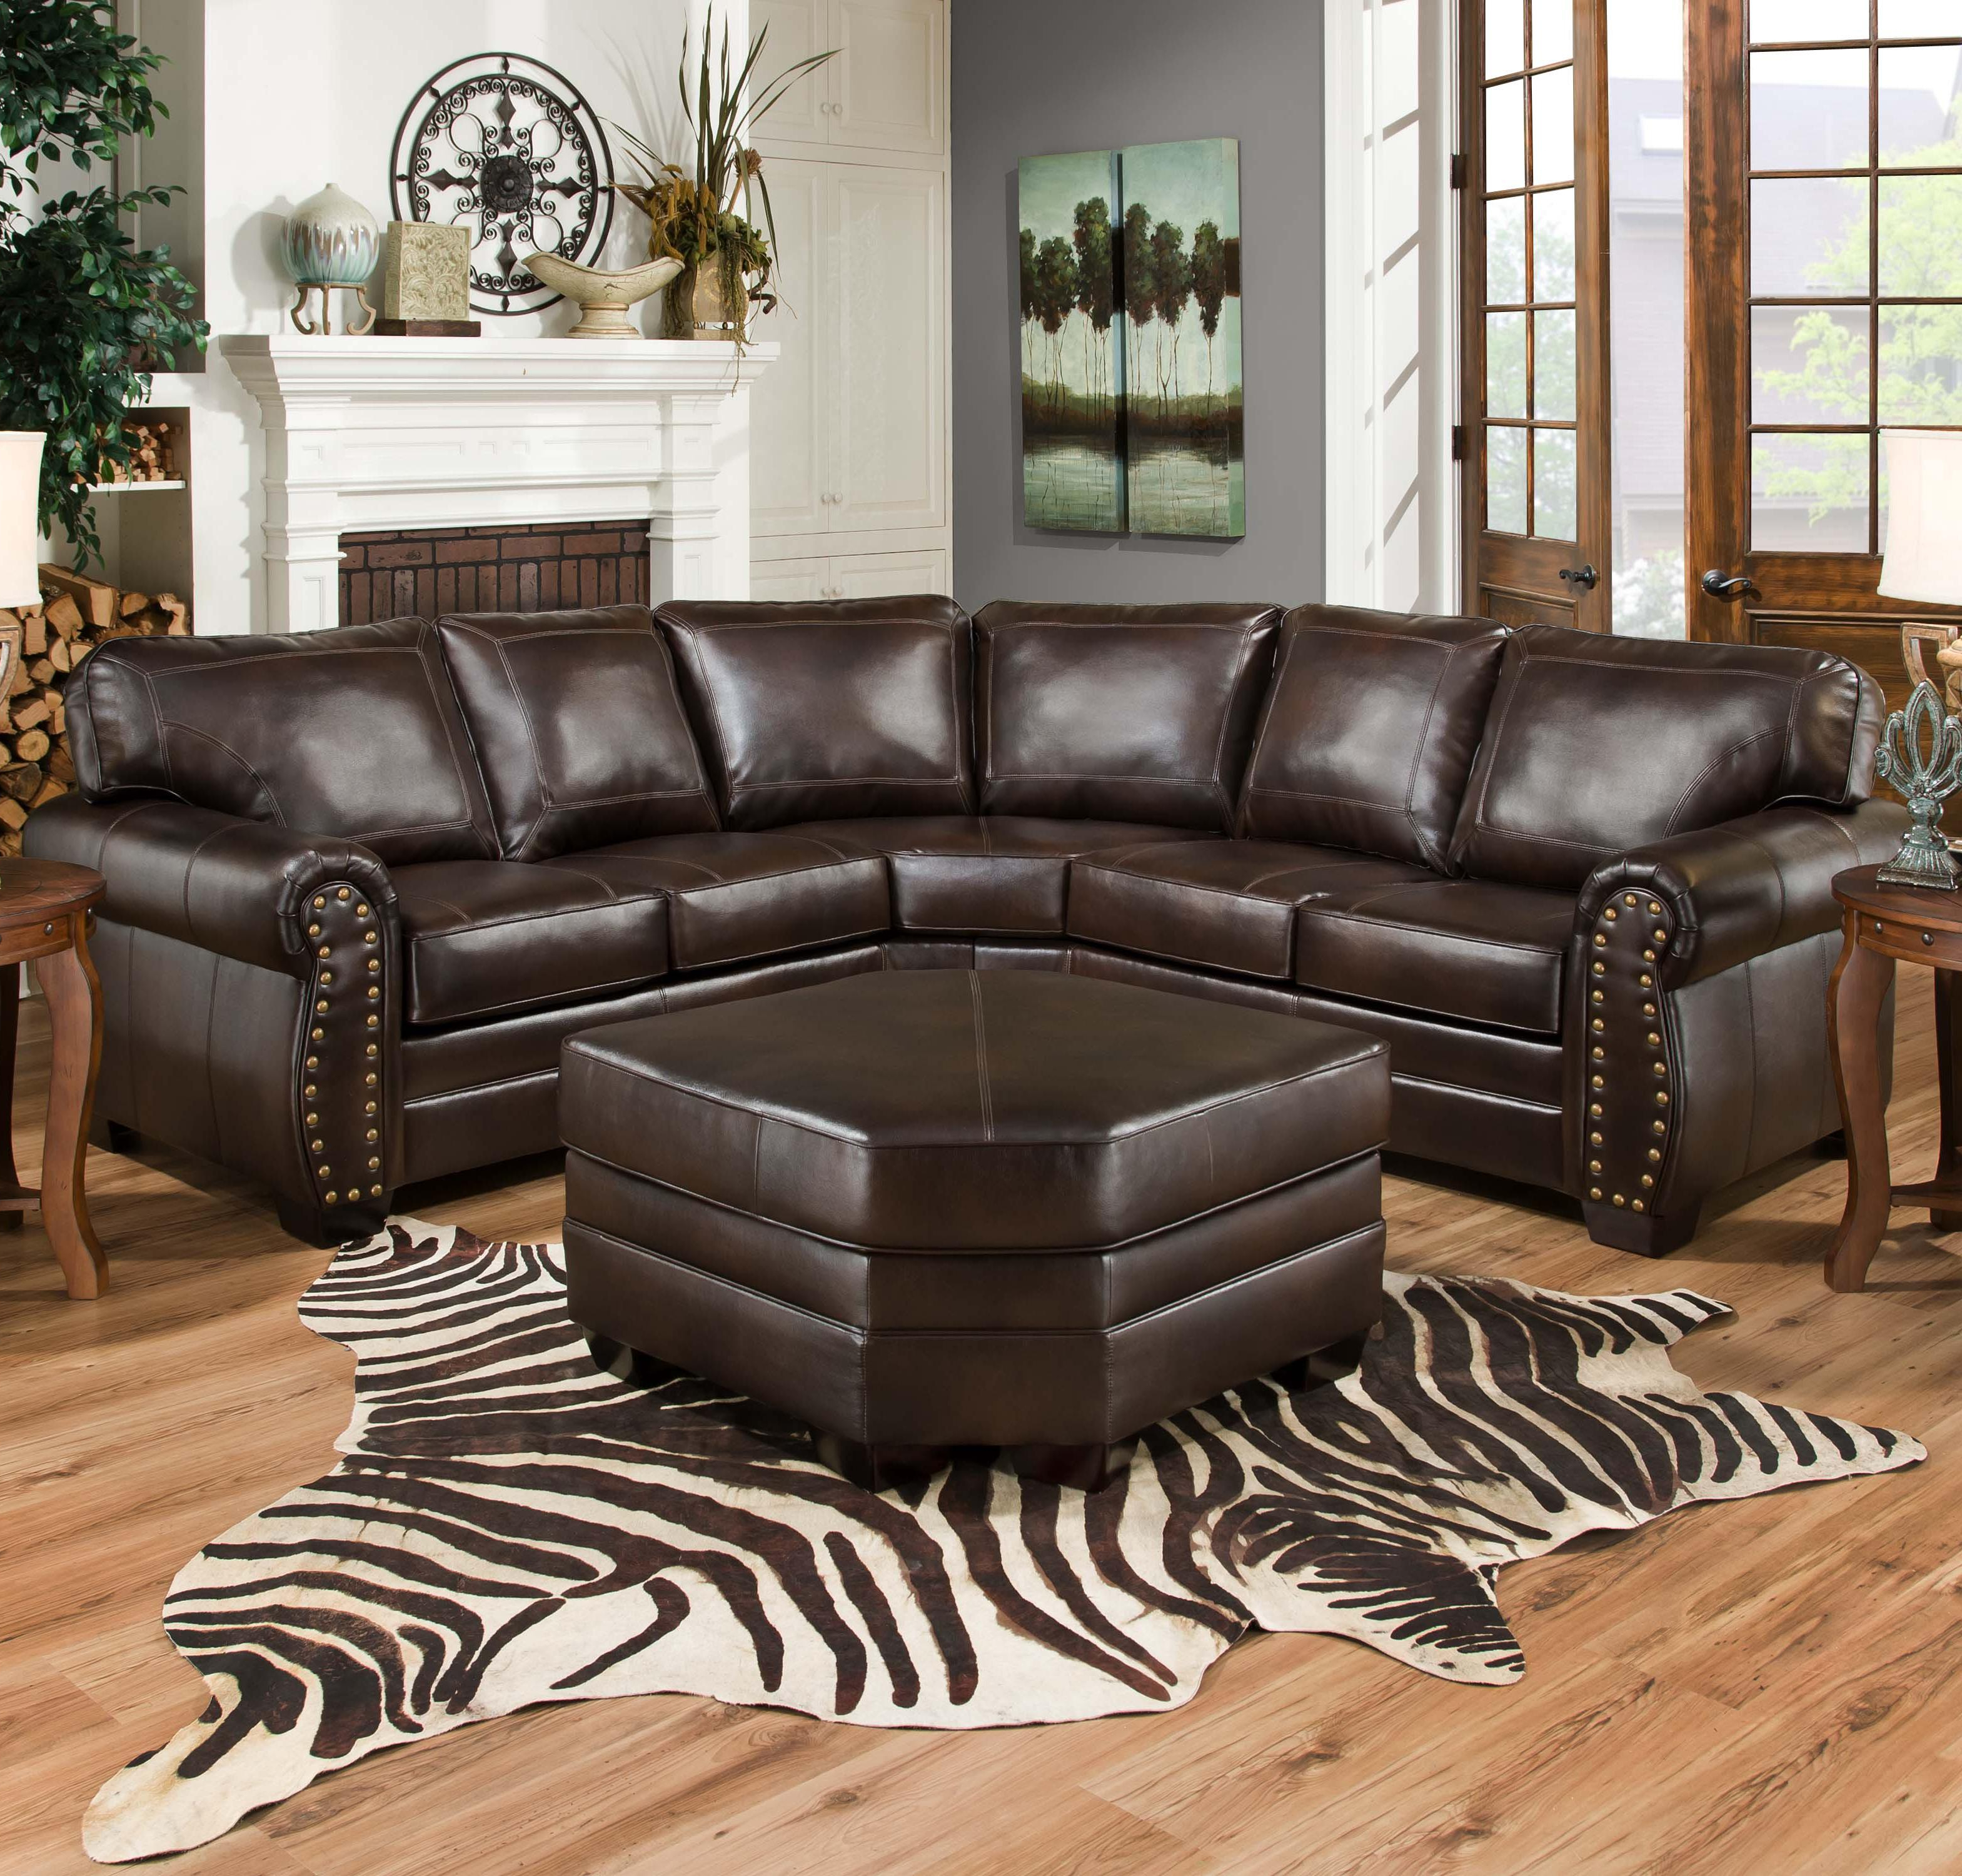 Aspen 2 Piece Sleeper Sectionals With Raf Chaise For Fashionable Simmons Upholstery 9222 Traditional Sectional Sofa With Rolled Arms (Gallery 9 of 20)